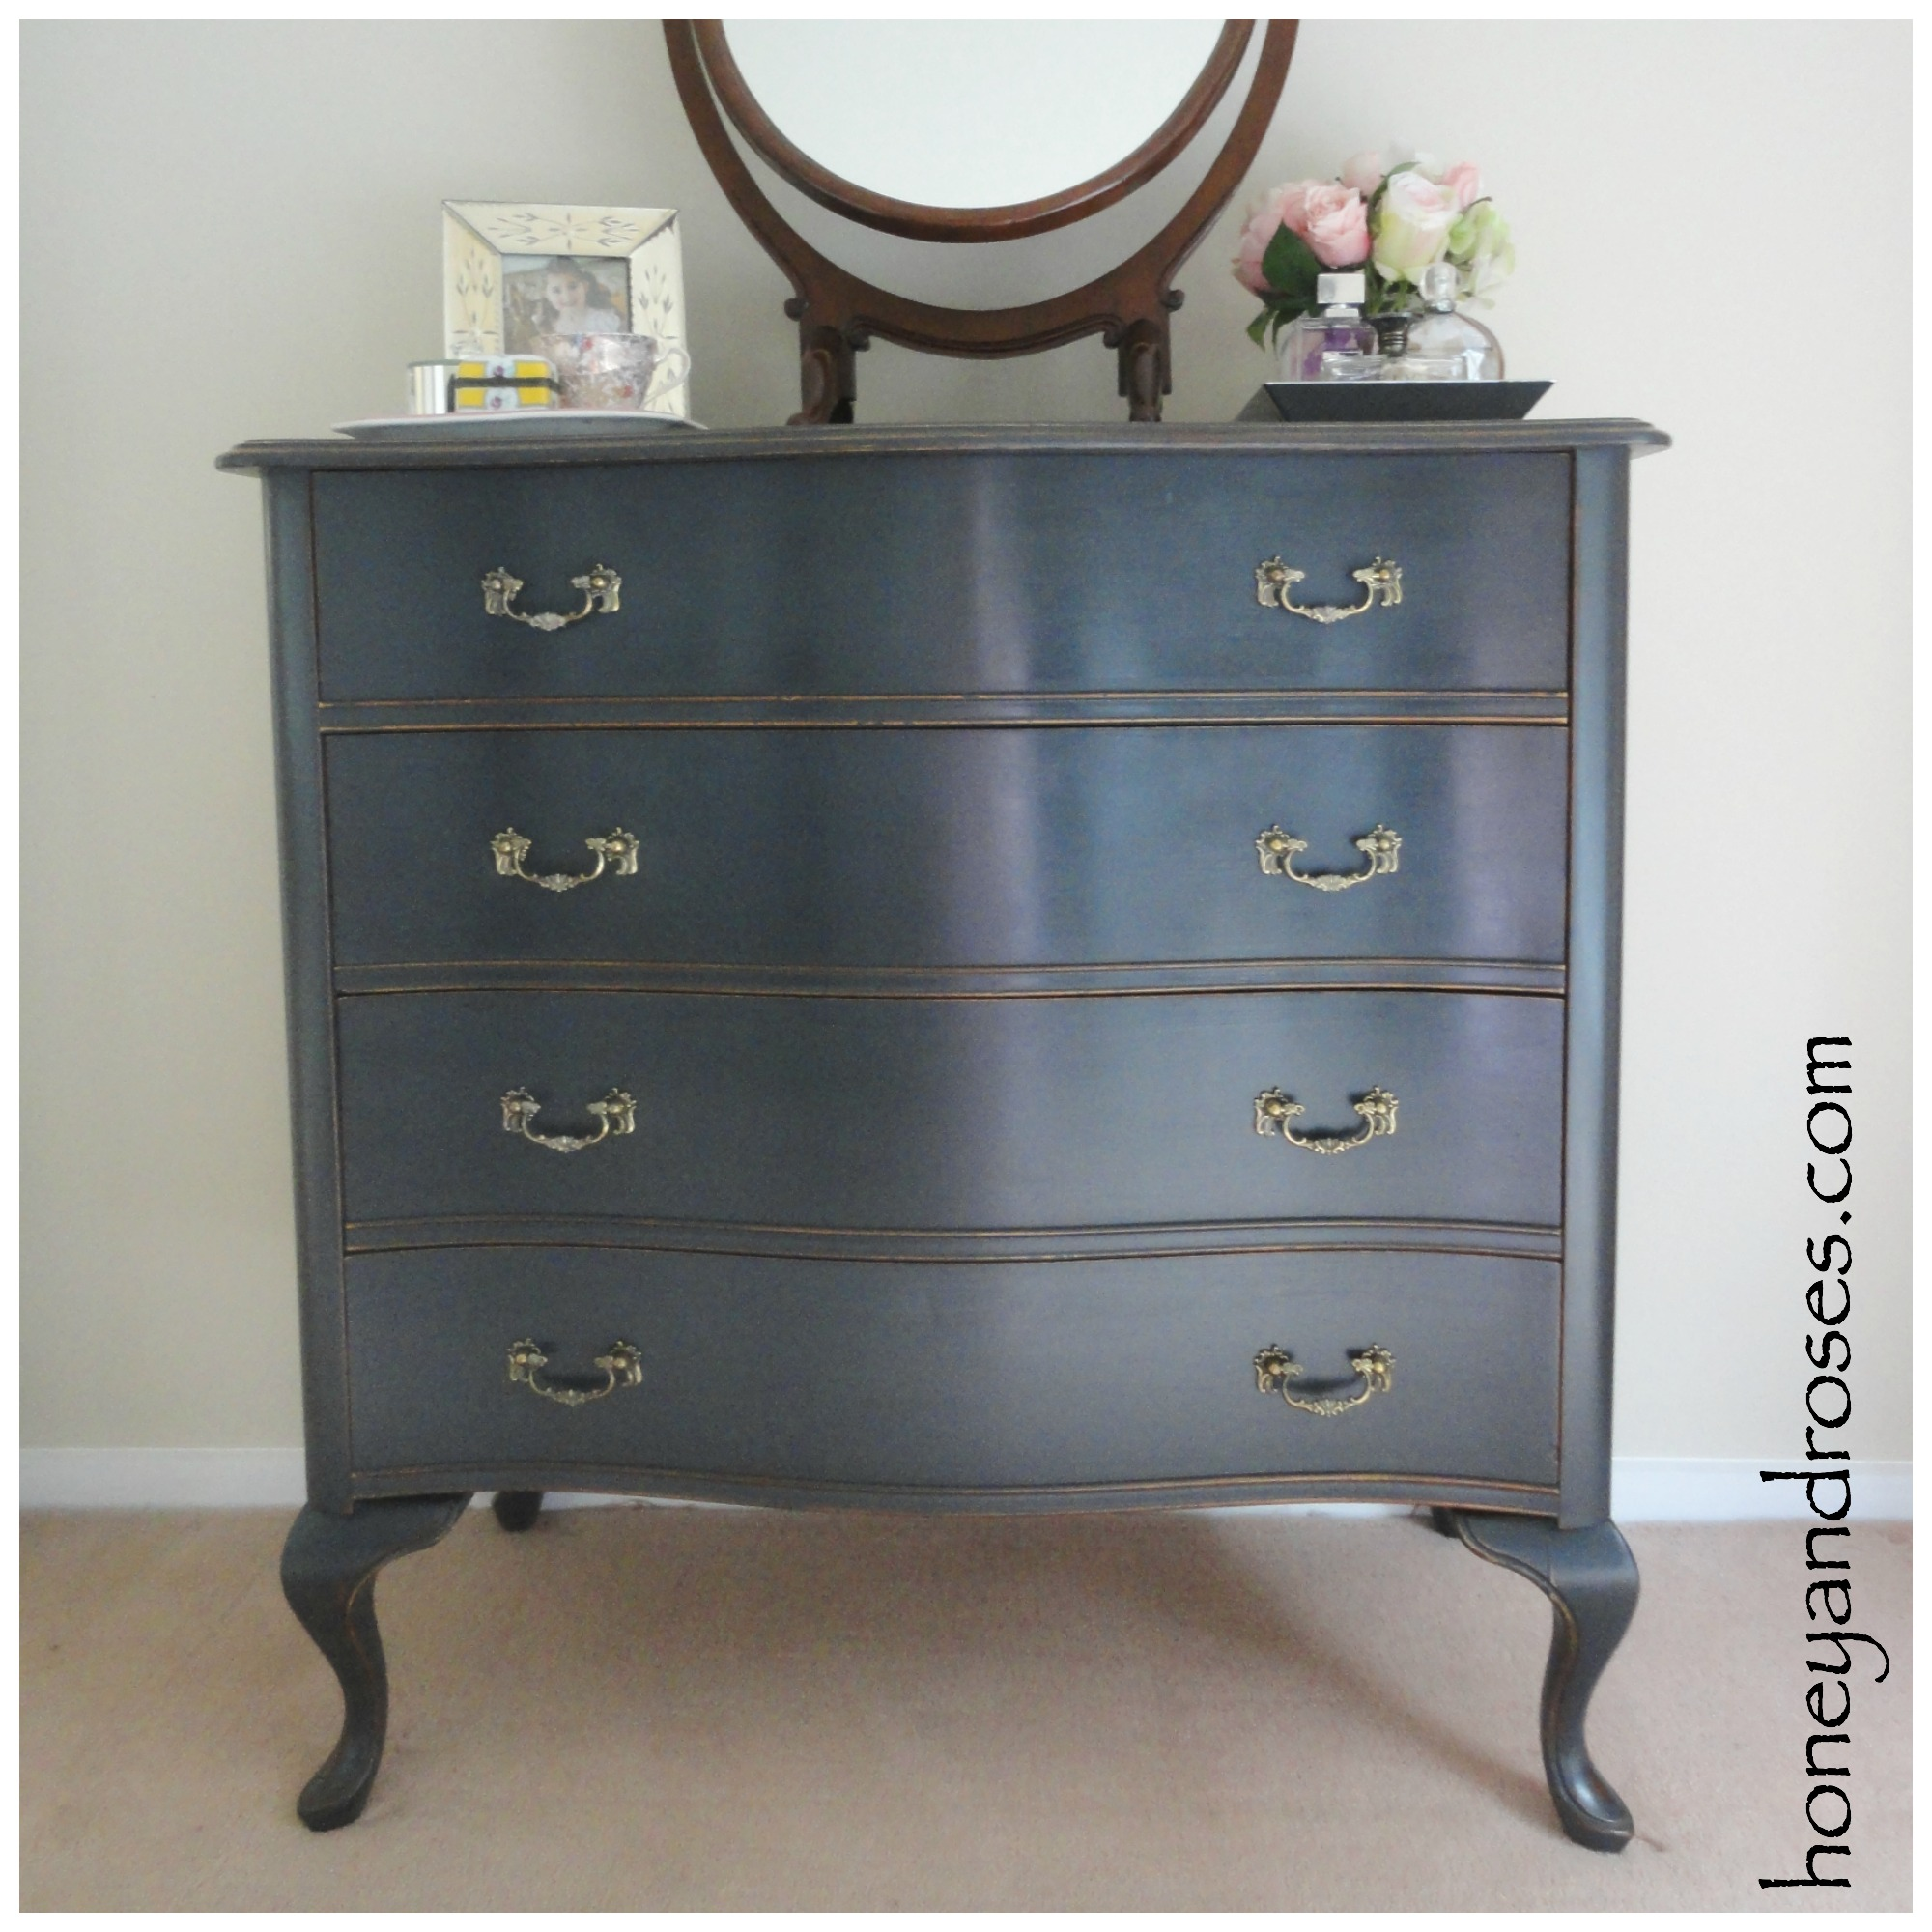 bedroom furniture makeover. Bedroom Chest-of-Drawers Makeover Furniture